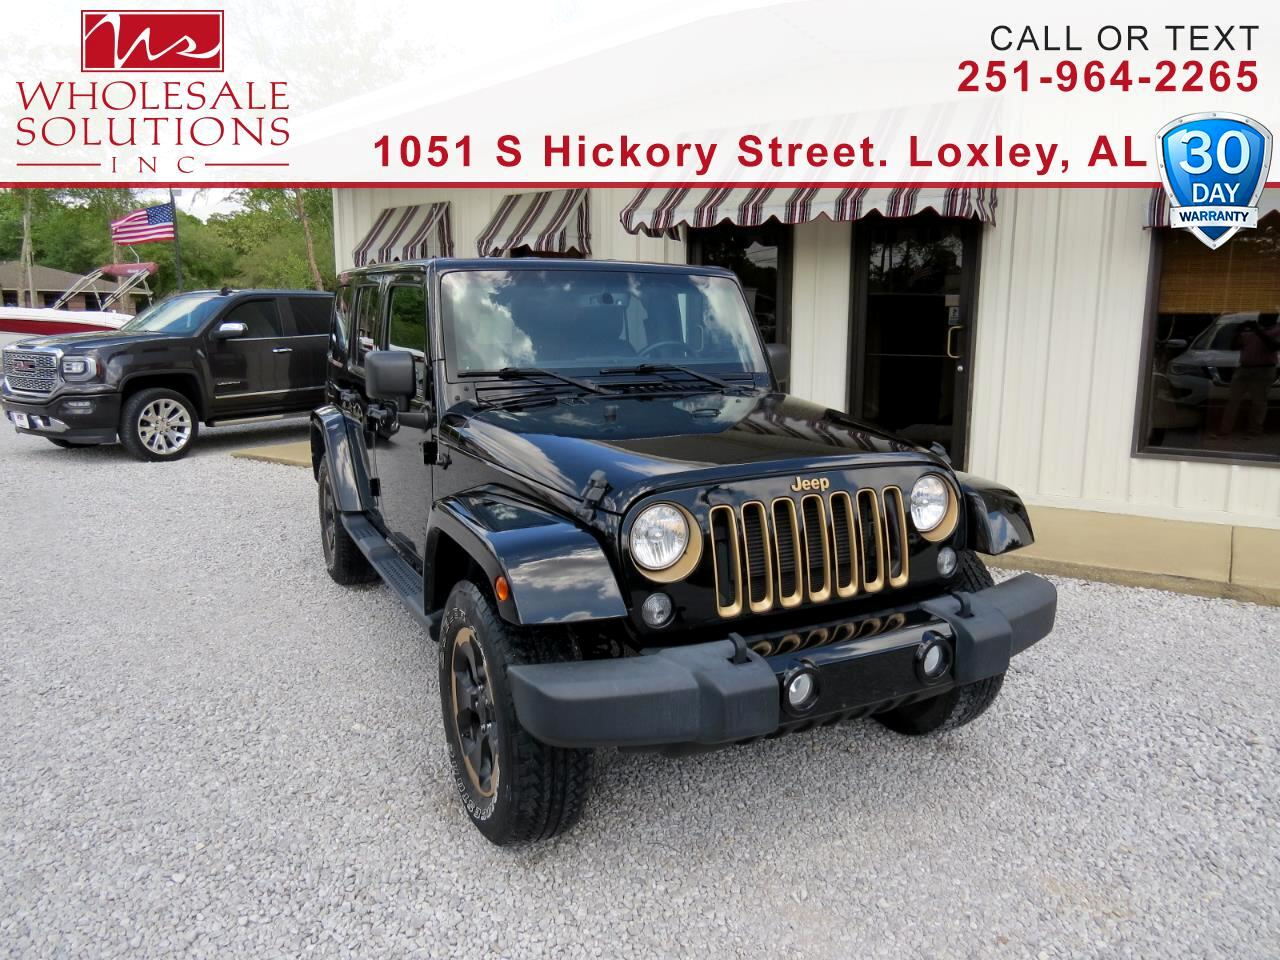 2014 Jeep Wrangler Unlimited 4WD 4dr Dragon Edition *Ltd Avail*